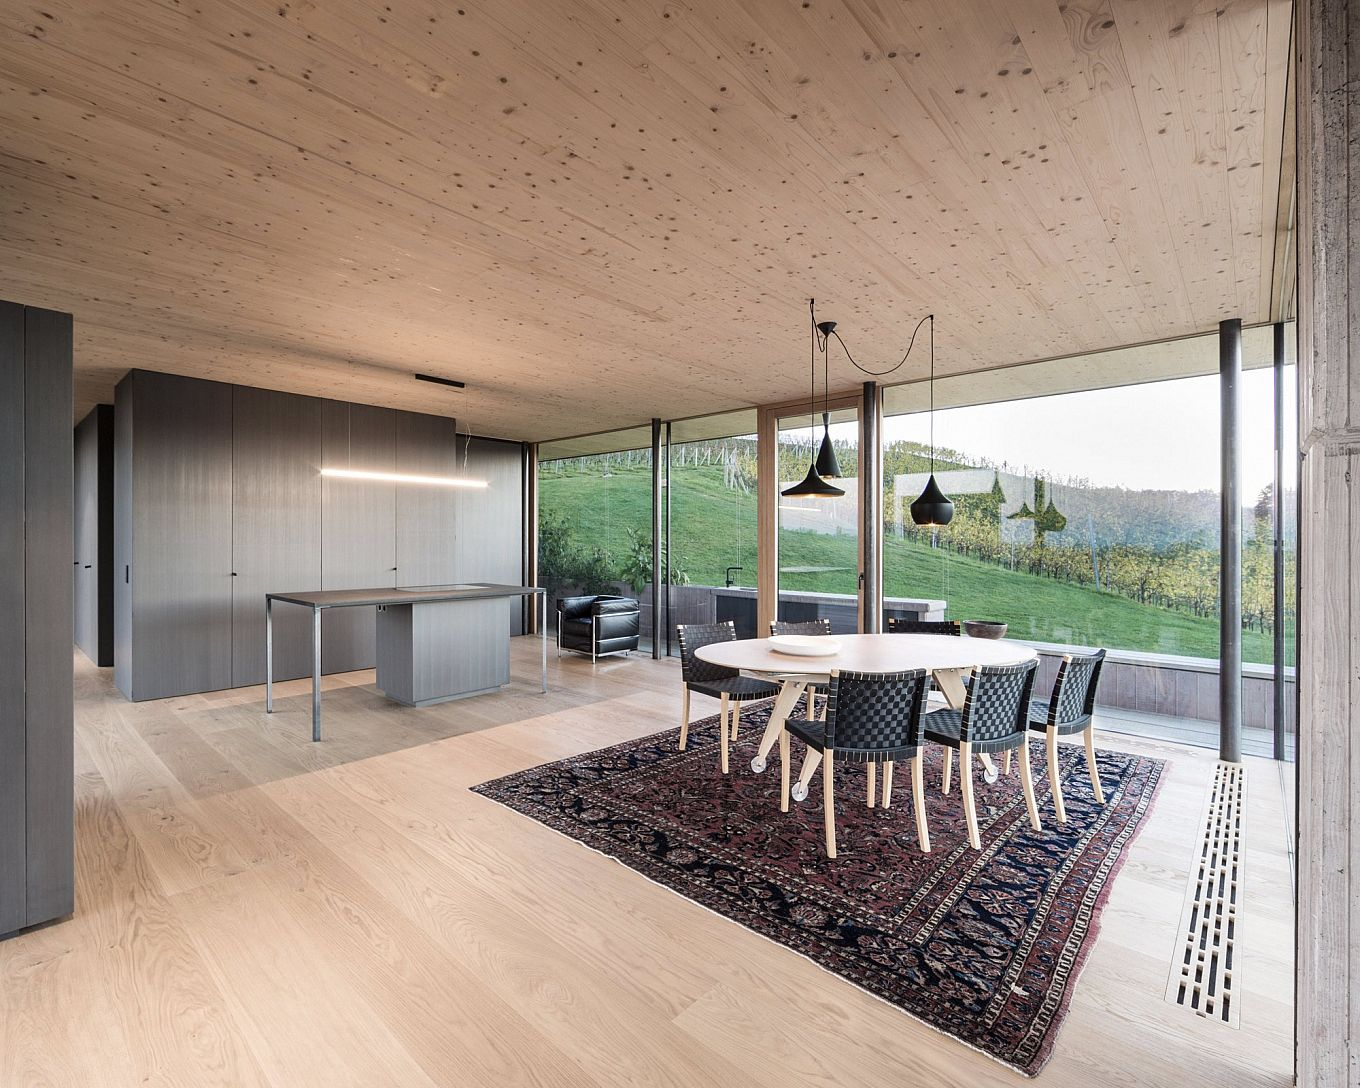 house-t-by-ulrike-tinnacher-gessato-3